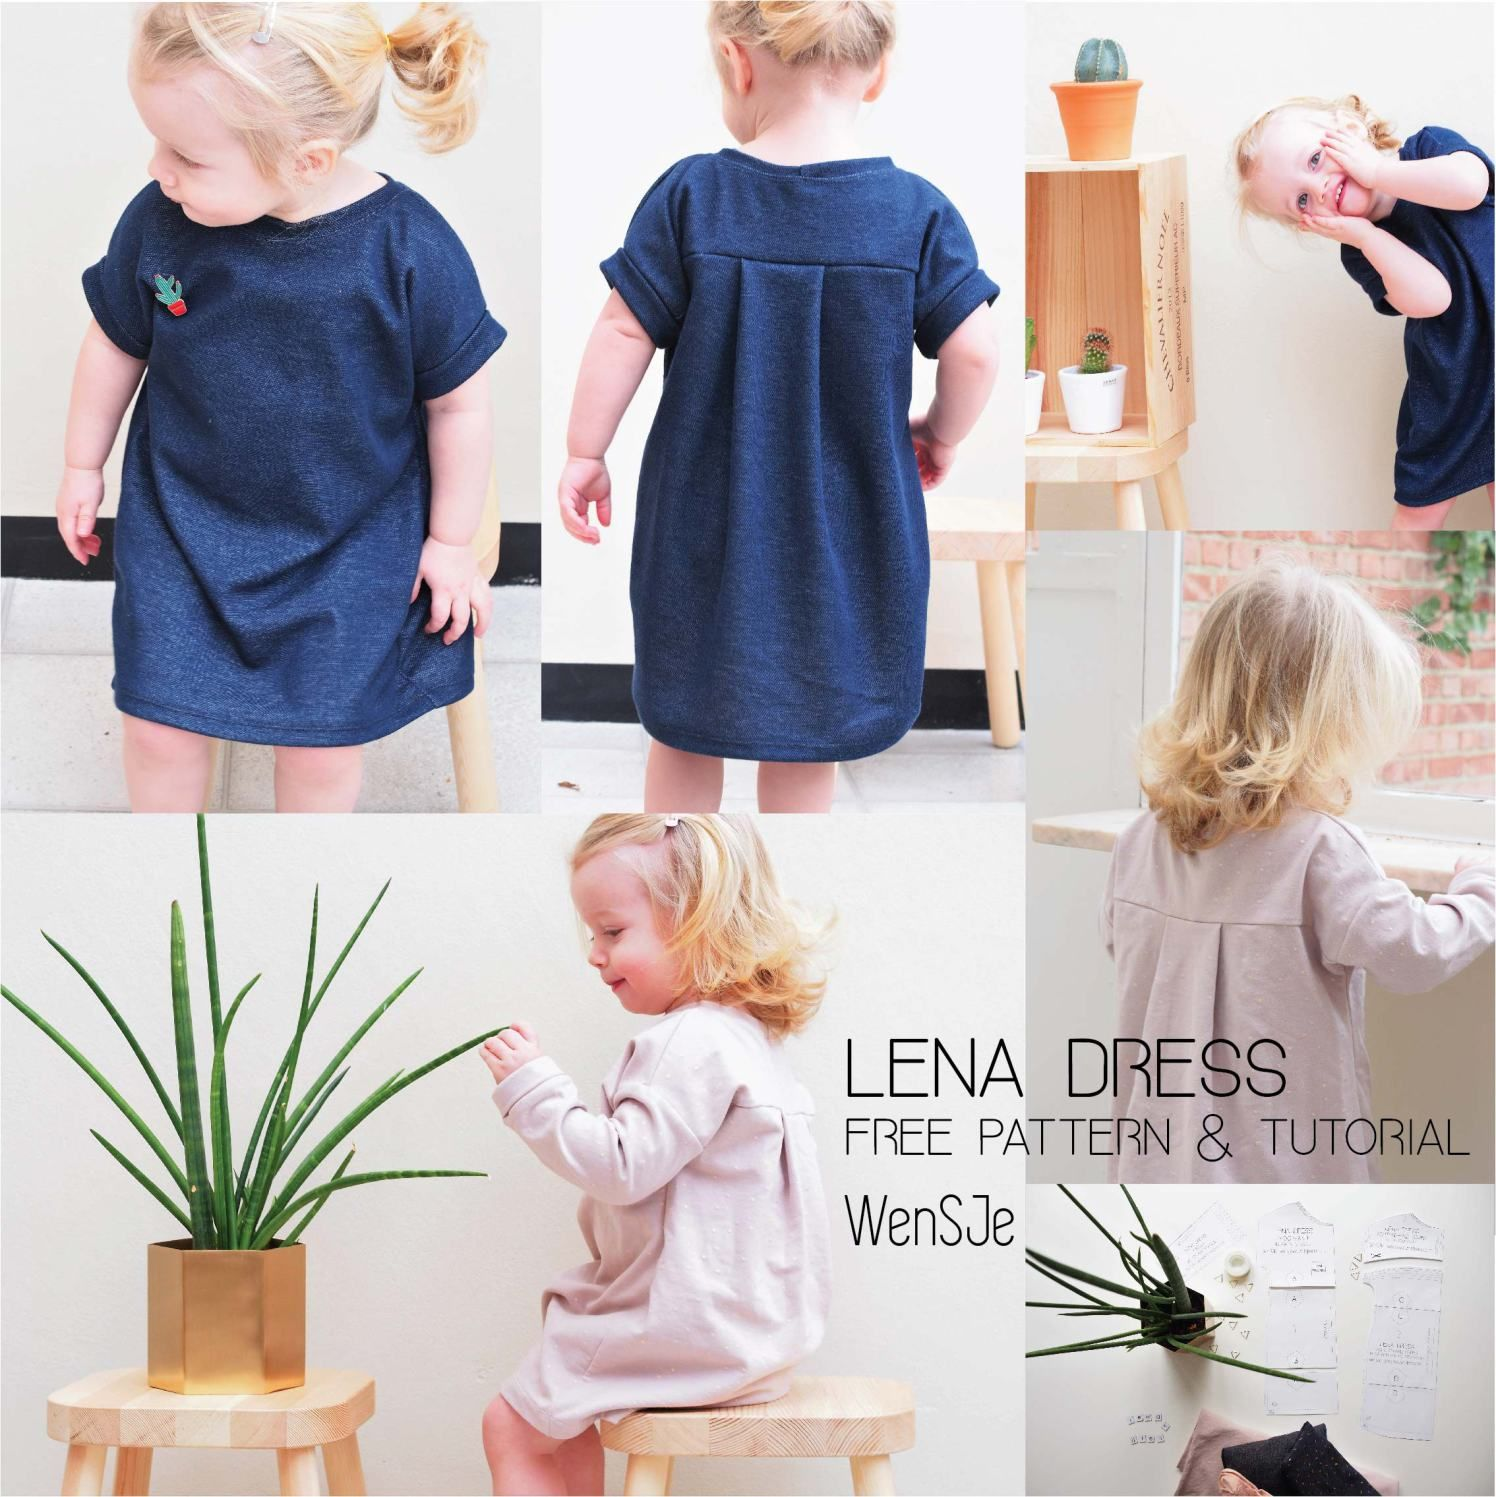 Kinderkleding Maat 80.Lena Dress Gratis Naaipatroon Free Pattern Tutorial Diy